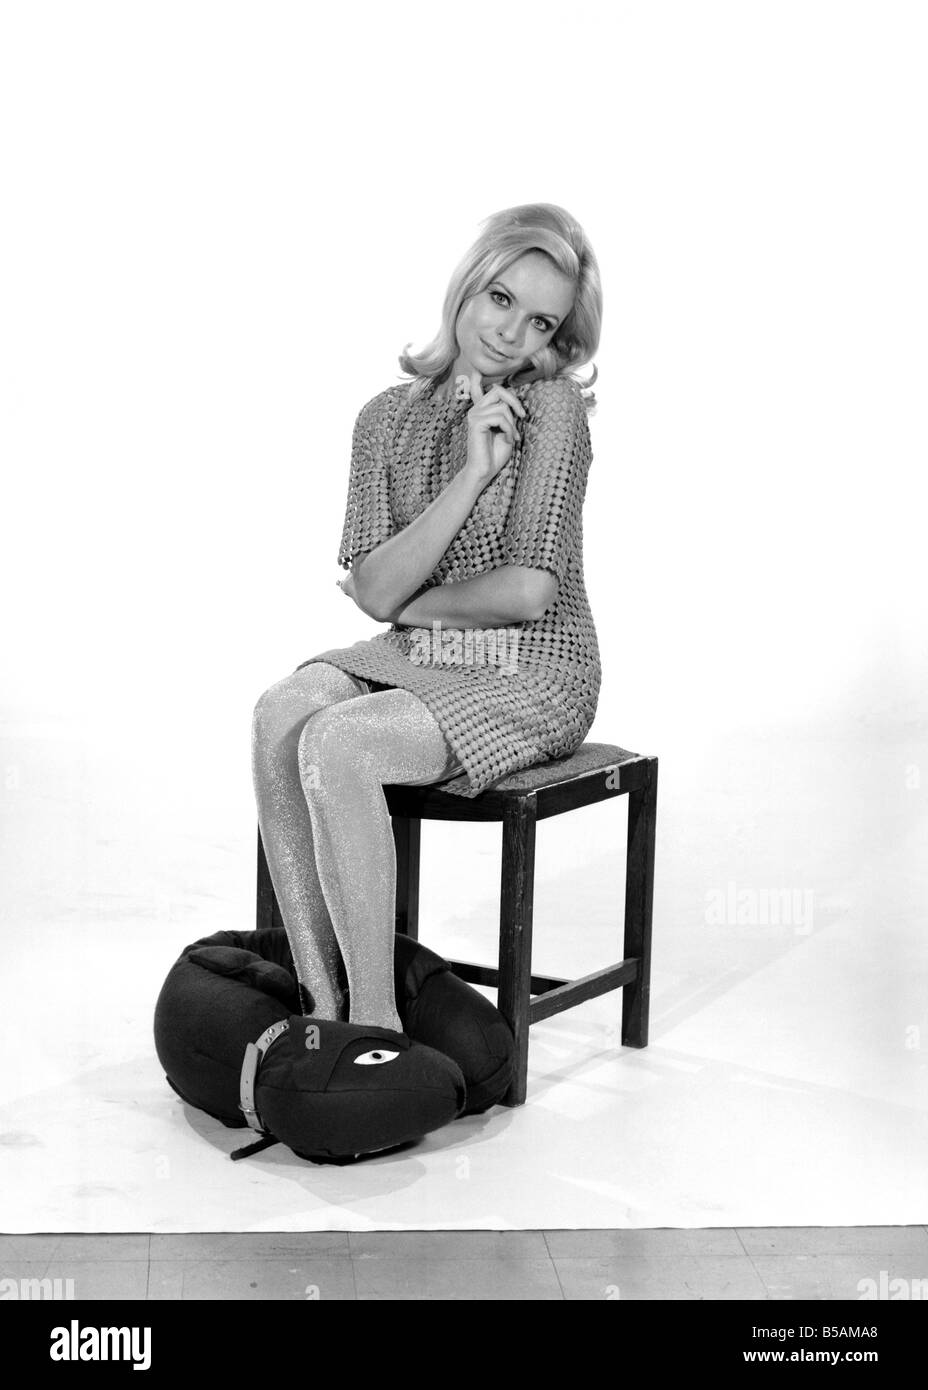 Model Anna Maria Greaves with Roly dog soft toy and draft excluder. 1959 D169-011 - Stock Image